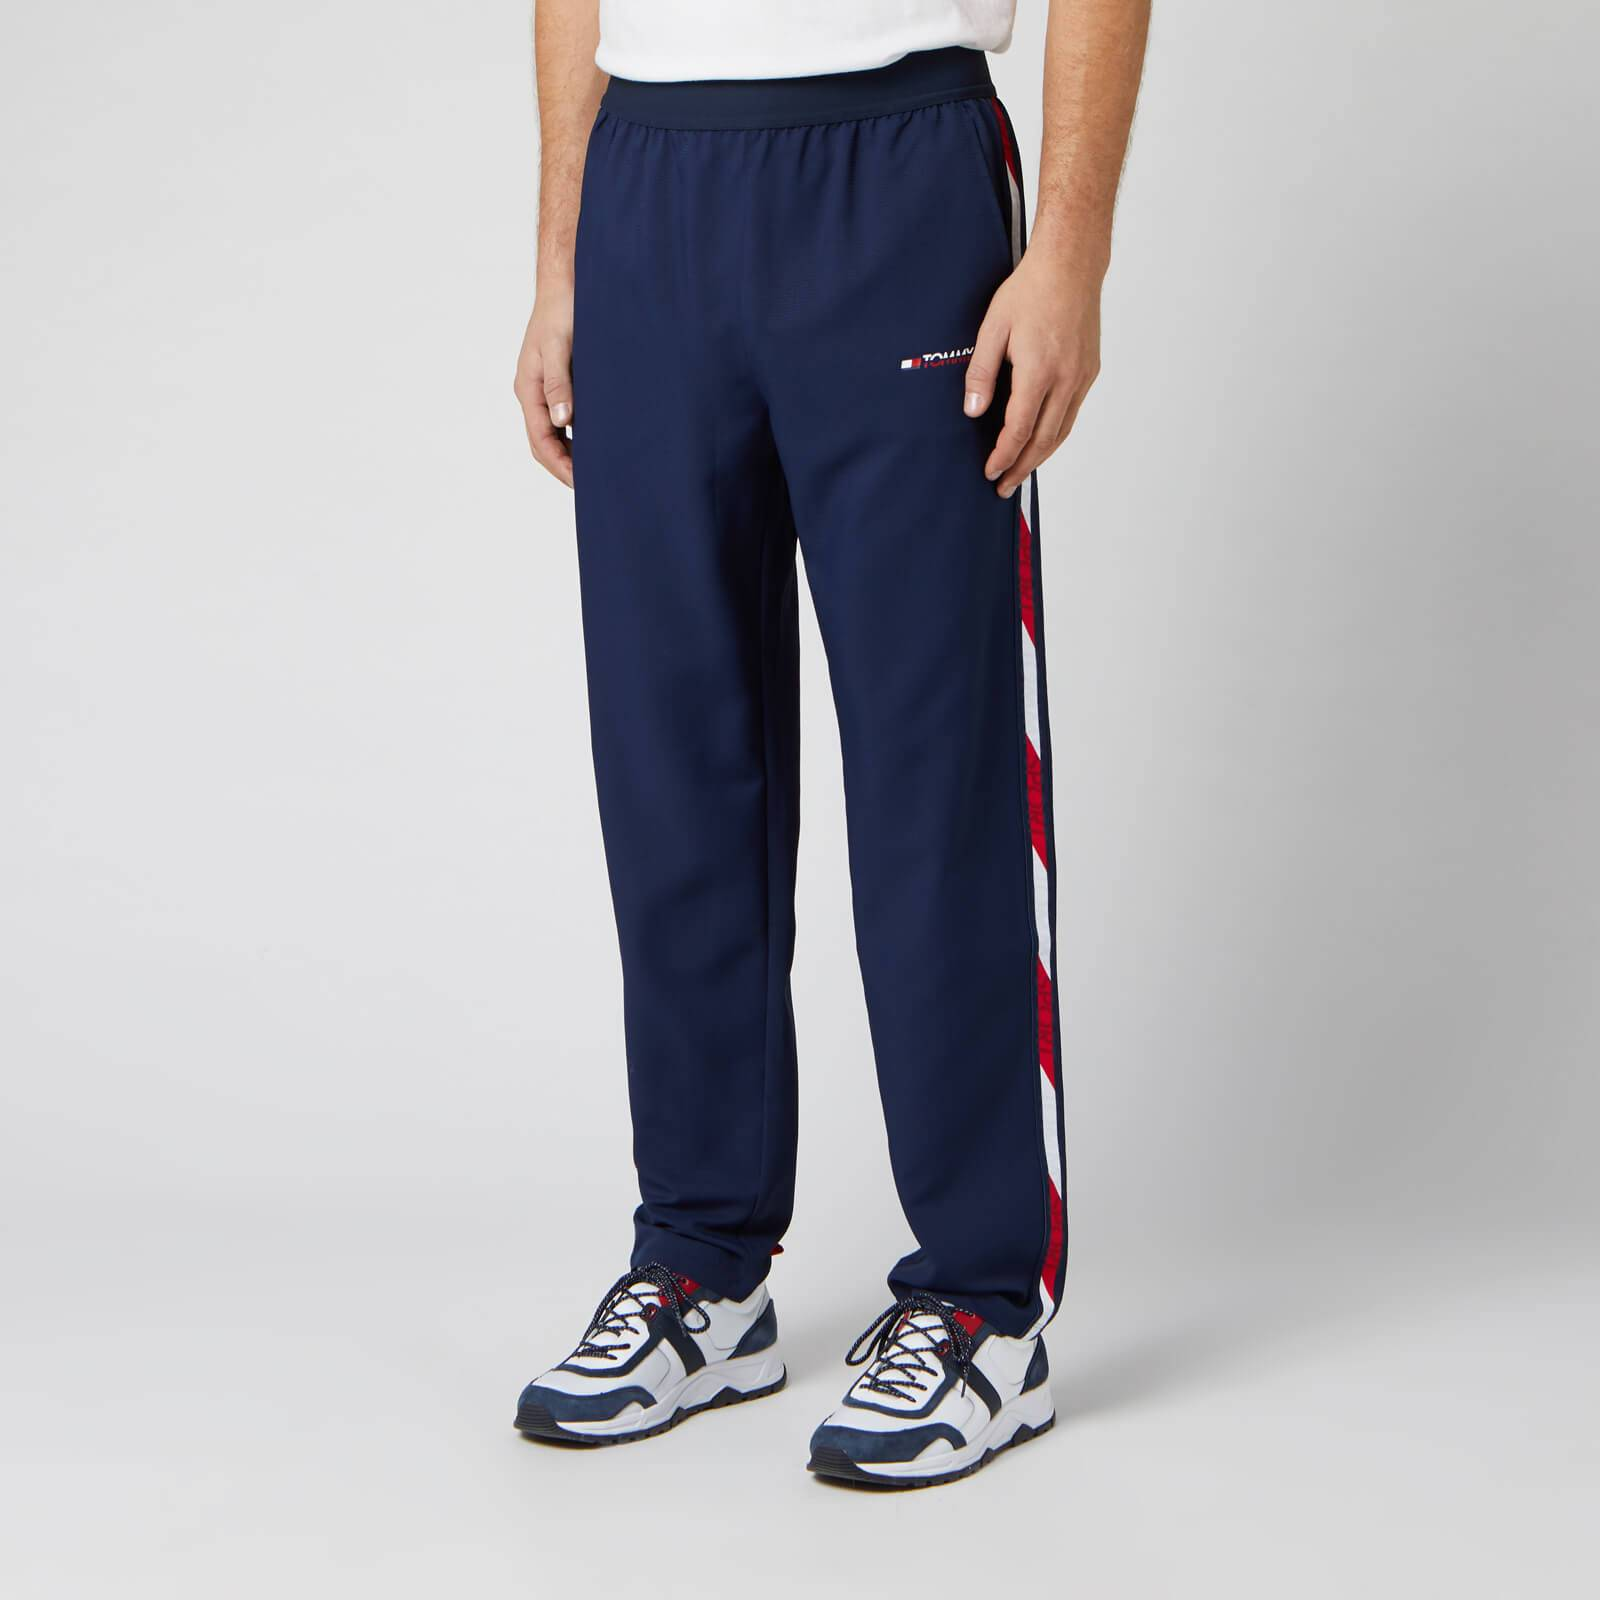 Tommy Sport Men's Woven Tape Pants - Sport Navy - XL